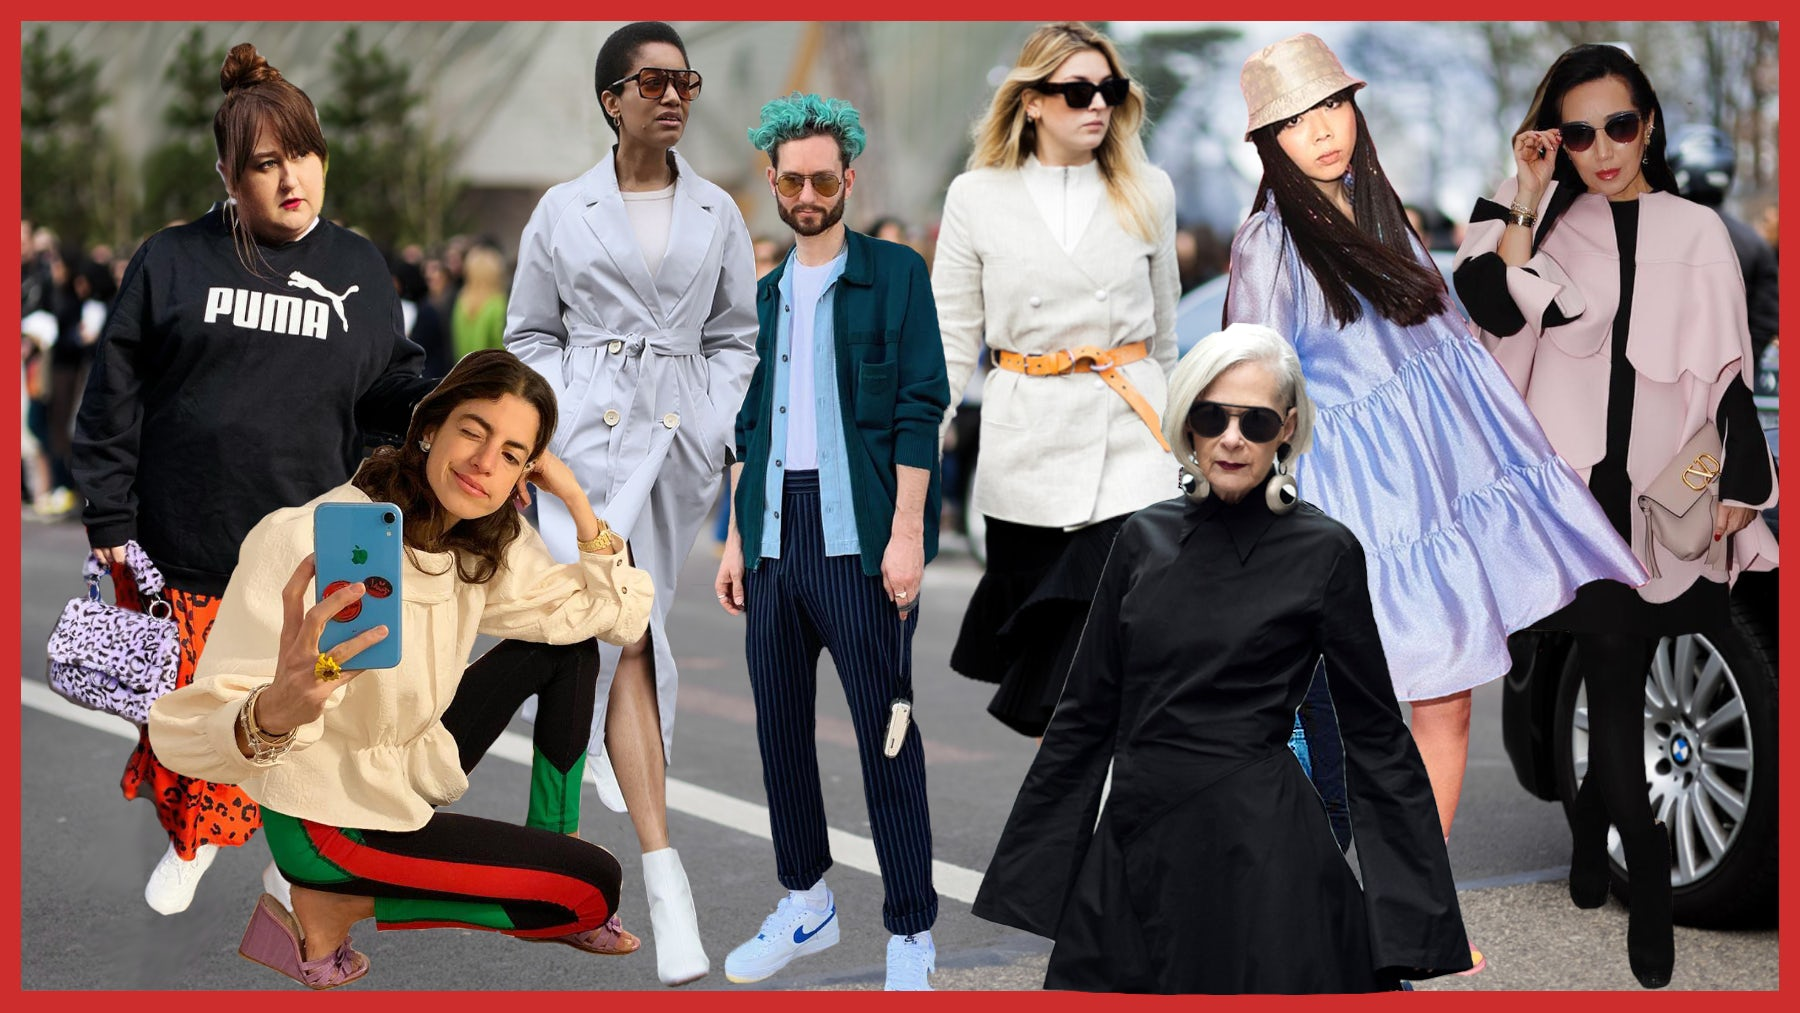 (L-R) @lottielamour, @leandramcohen, @tamumcpherson, @isaaclikes_, @camillecharriere, @iconaccidental, @susiebubble, @bagsnob | Source: Instagram, collage by BoF